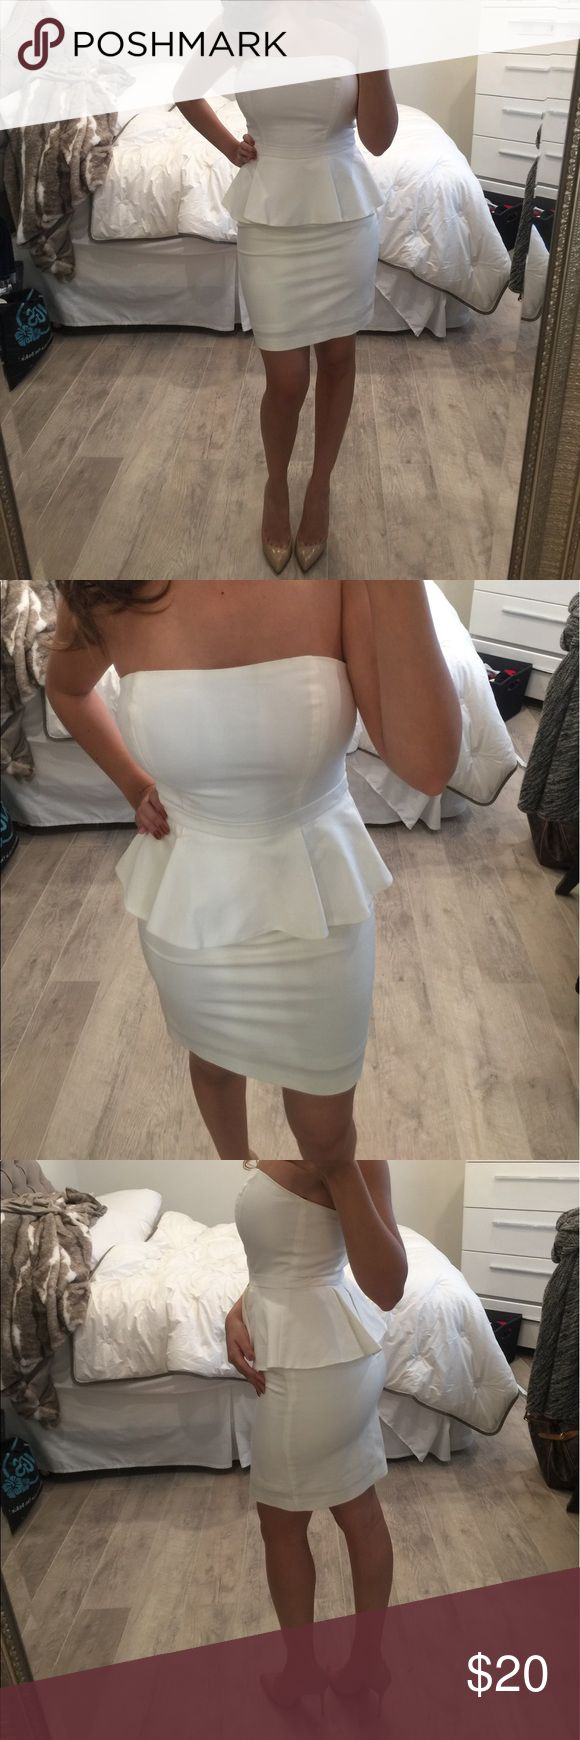 White peplum dress. Perfect for Kentucky derby. Perfect white strapless Peplum dress. Never worn new with tags. Would be super cute for Kentucky derby or Belmont type parties. Forever 21 Dresses Strapless